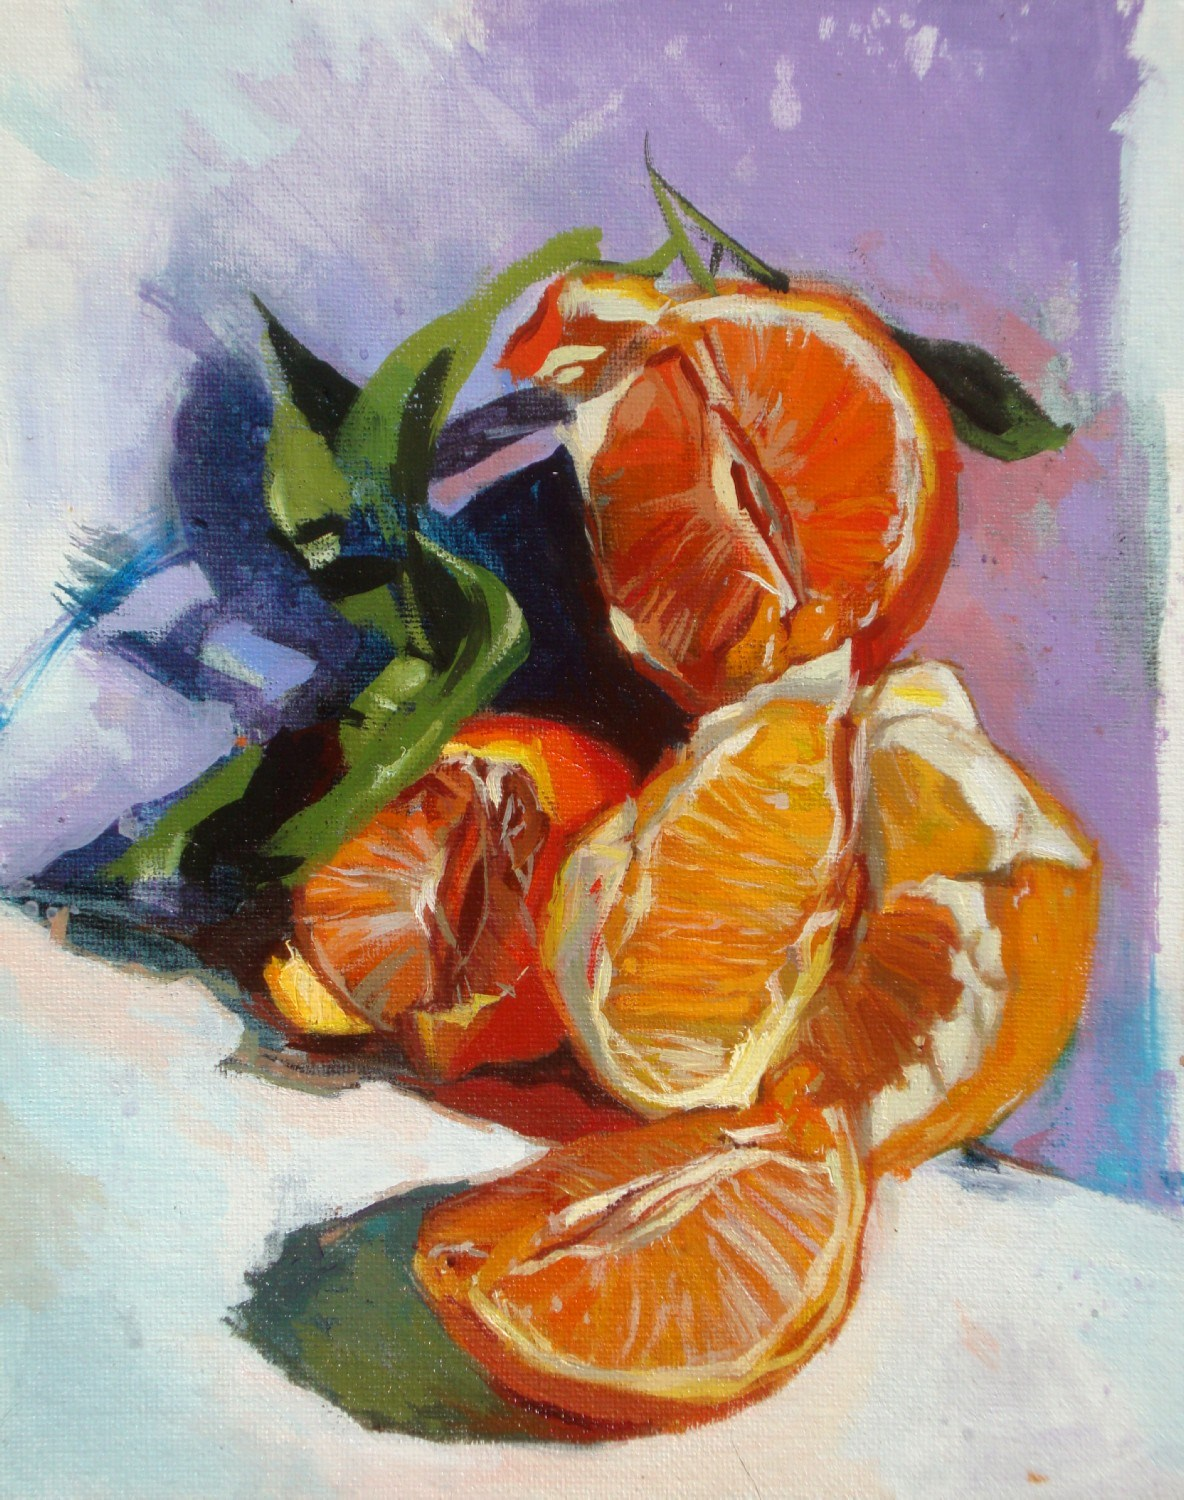 """Piled up fruits"" original fine art by Víctor Tristante"